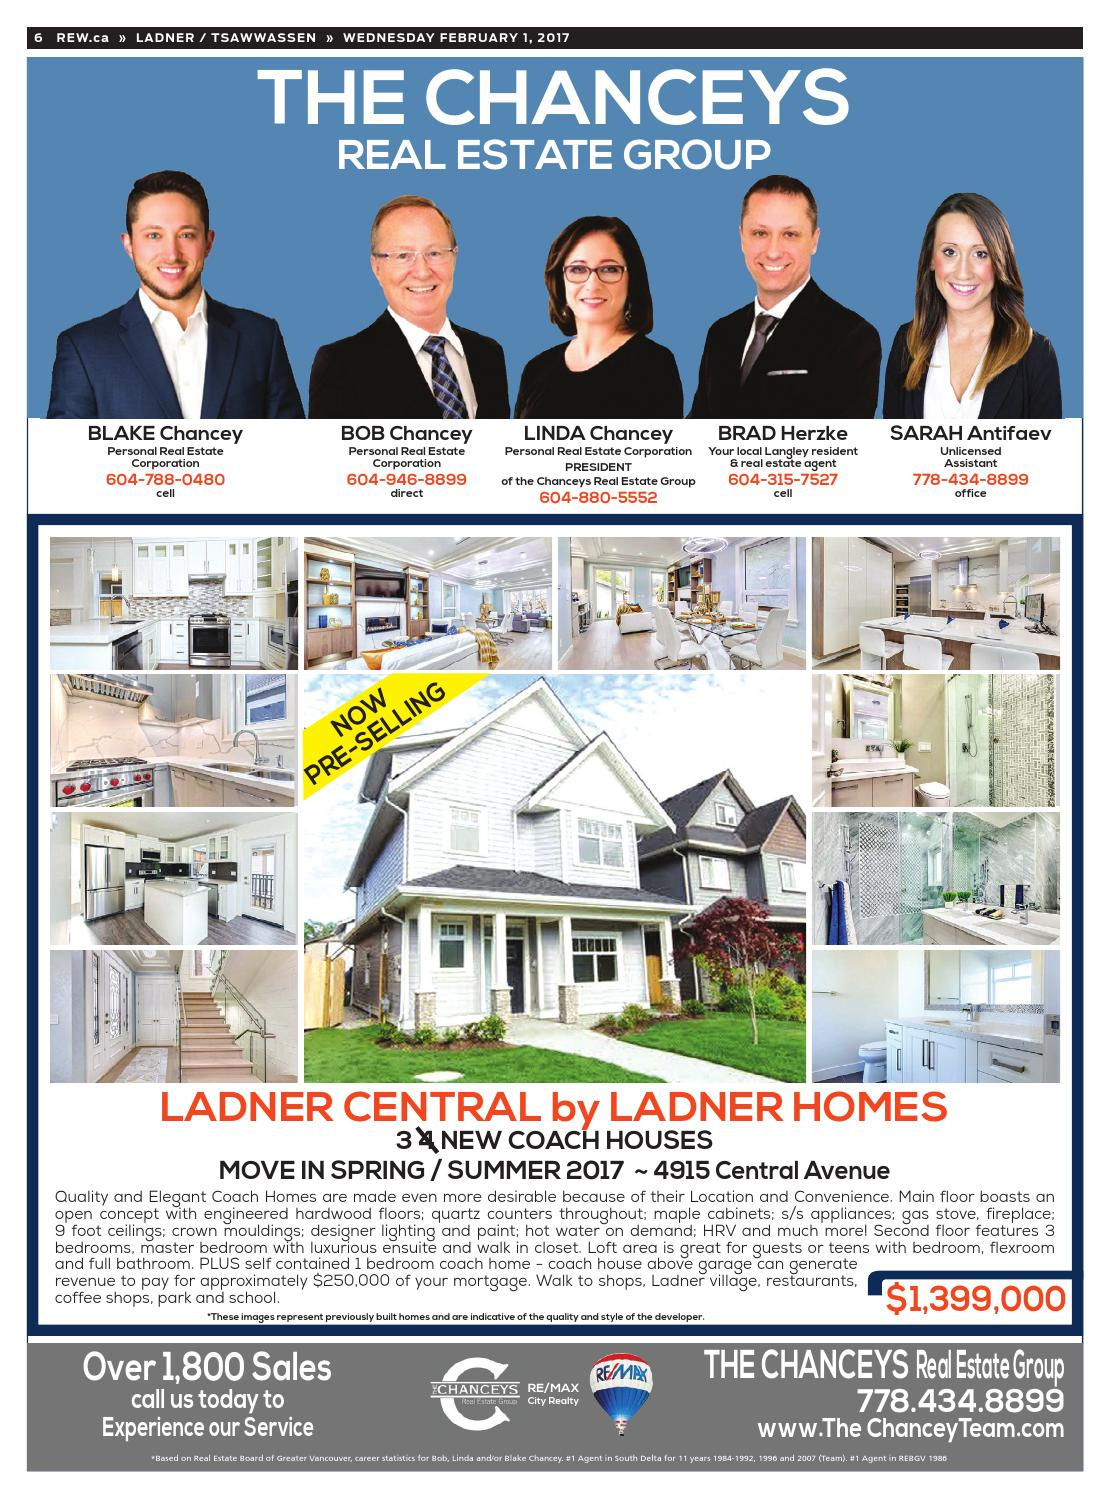 LADNER / TSAWWASSEN Feb 1, 2017 Real Estate Weekly by Real